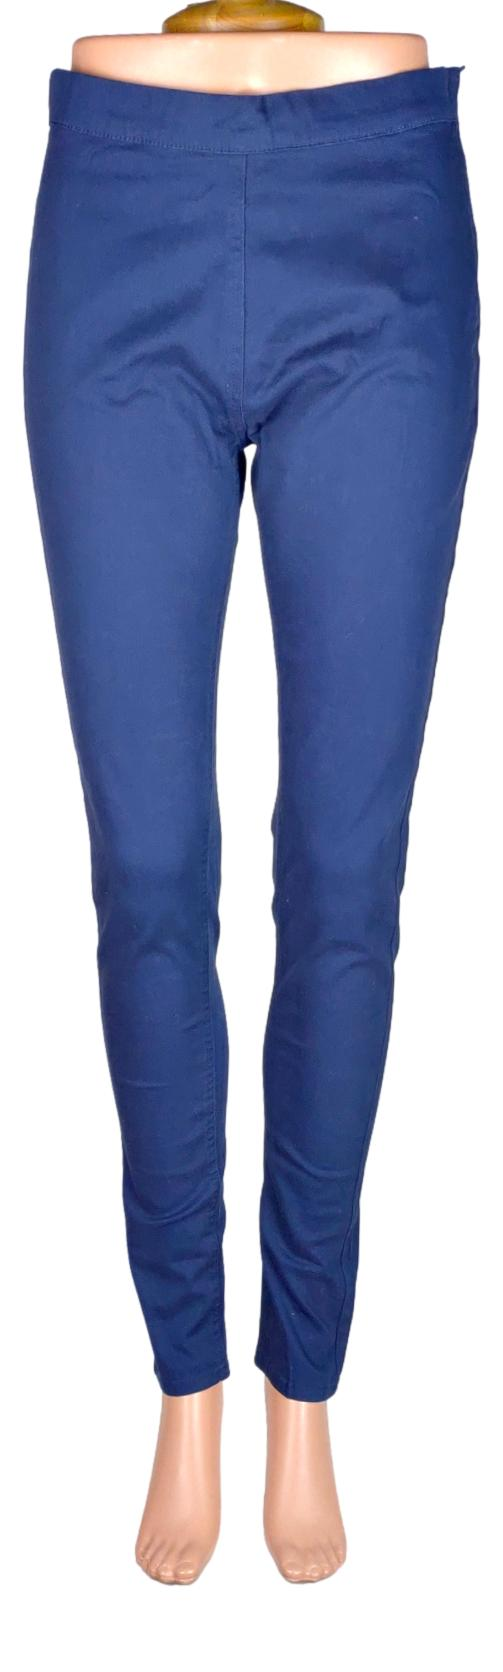 Pantalon In Extenso -Taille 36